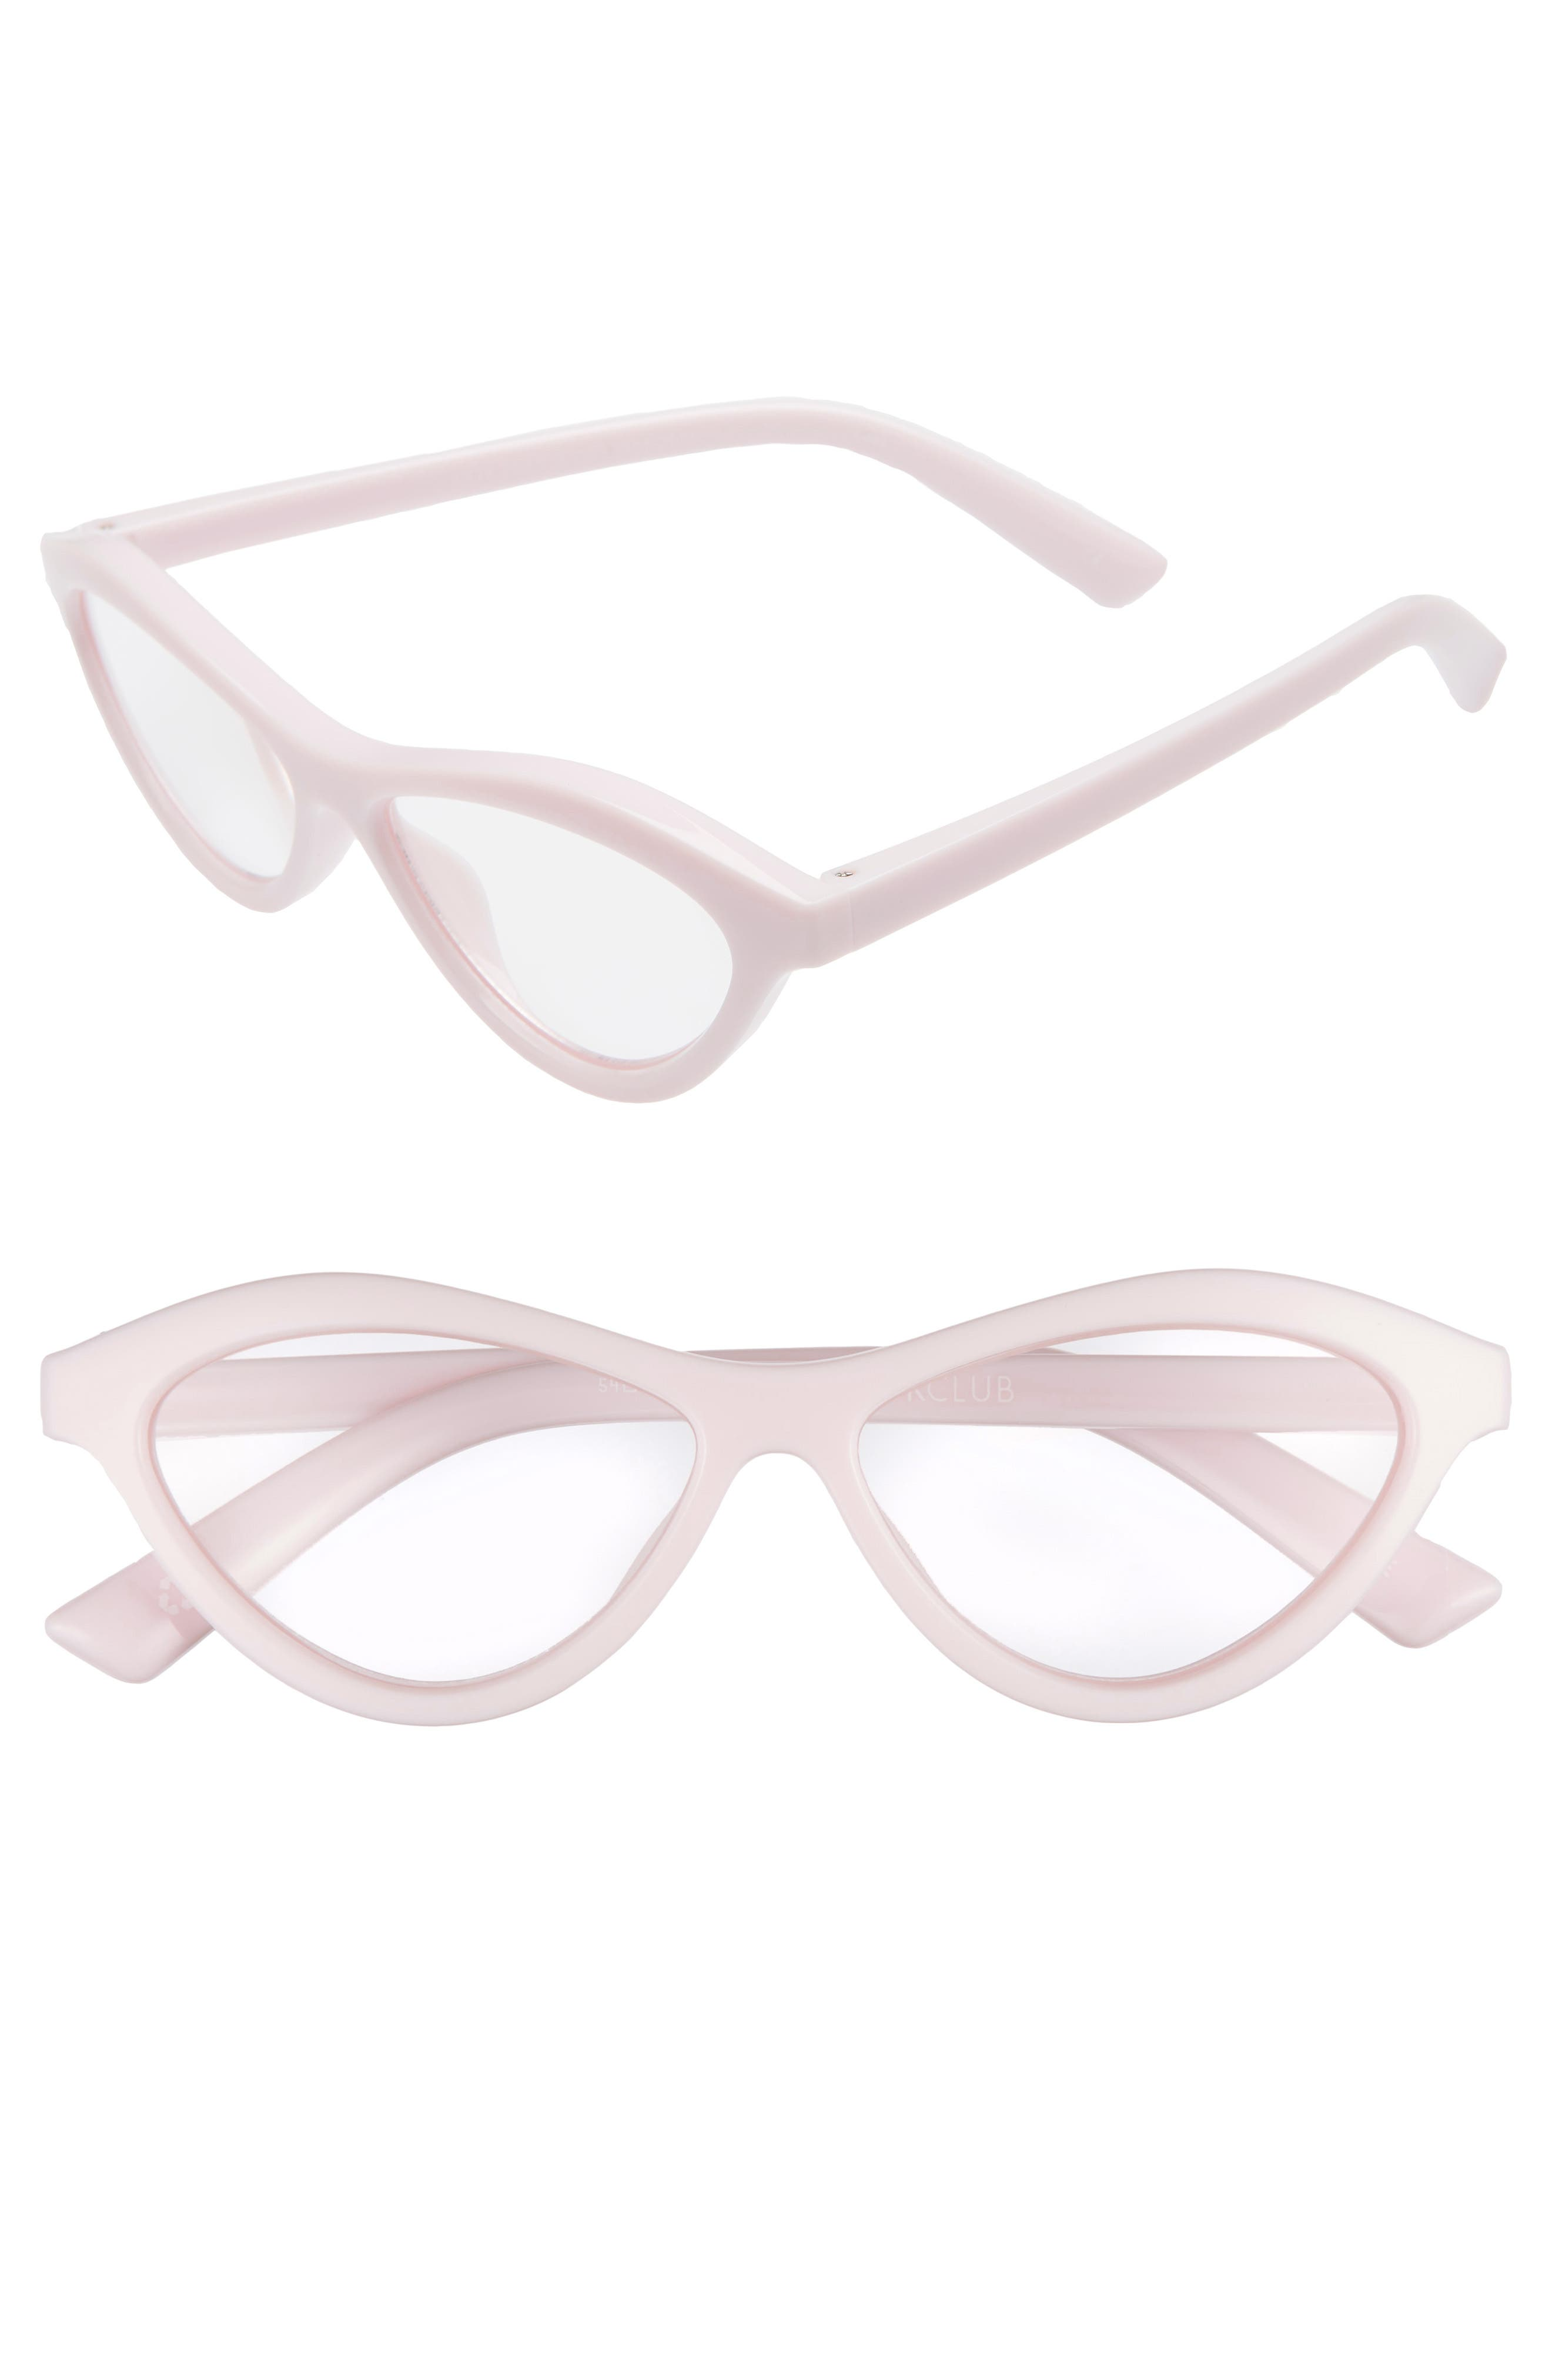 Fifty Fails a Day 54mm Reading Glasses,                             Main thumbnail 1, color,                             POWDER PINK